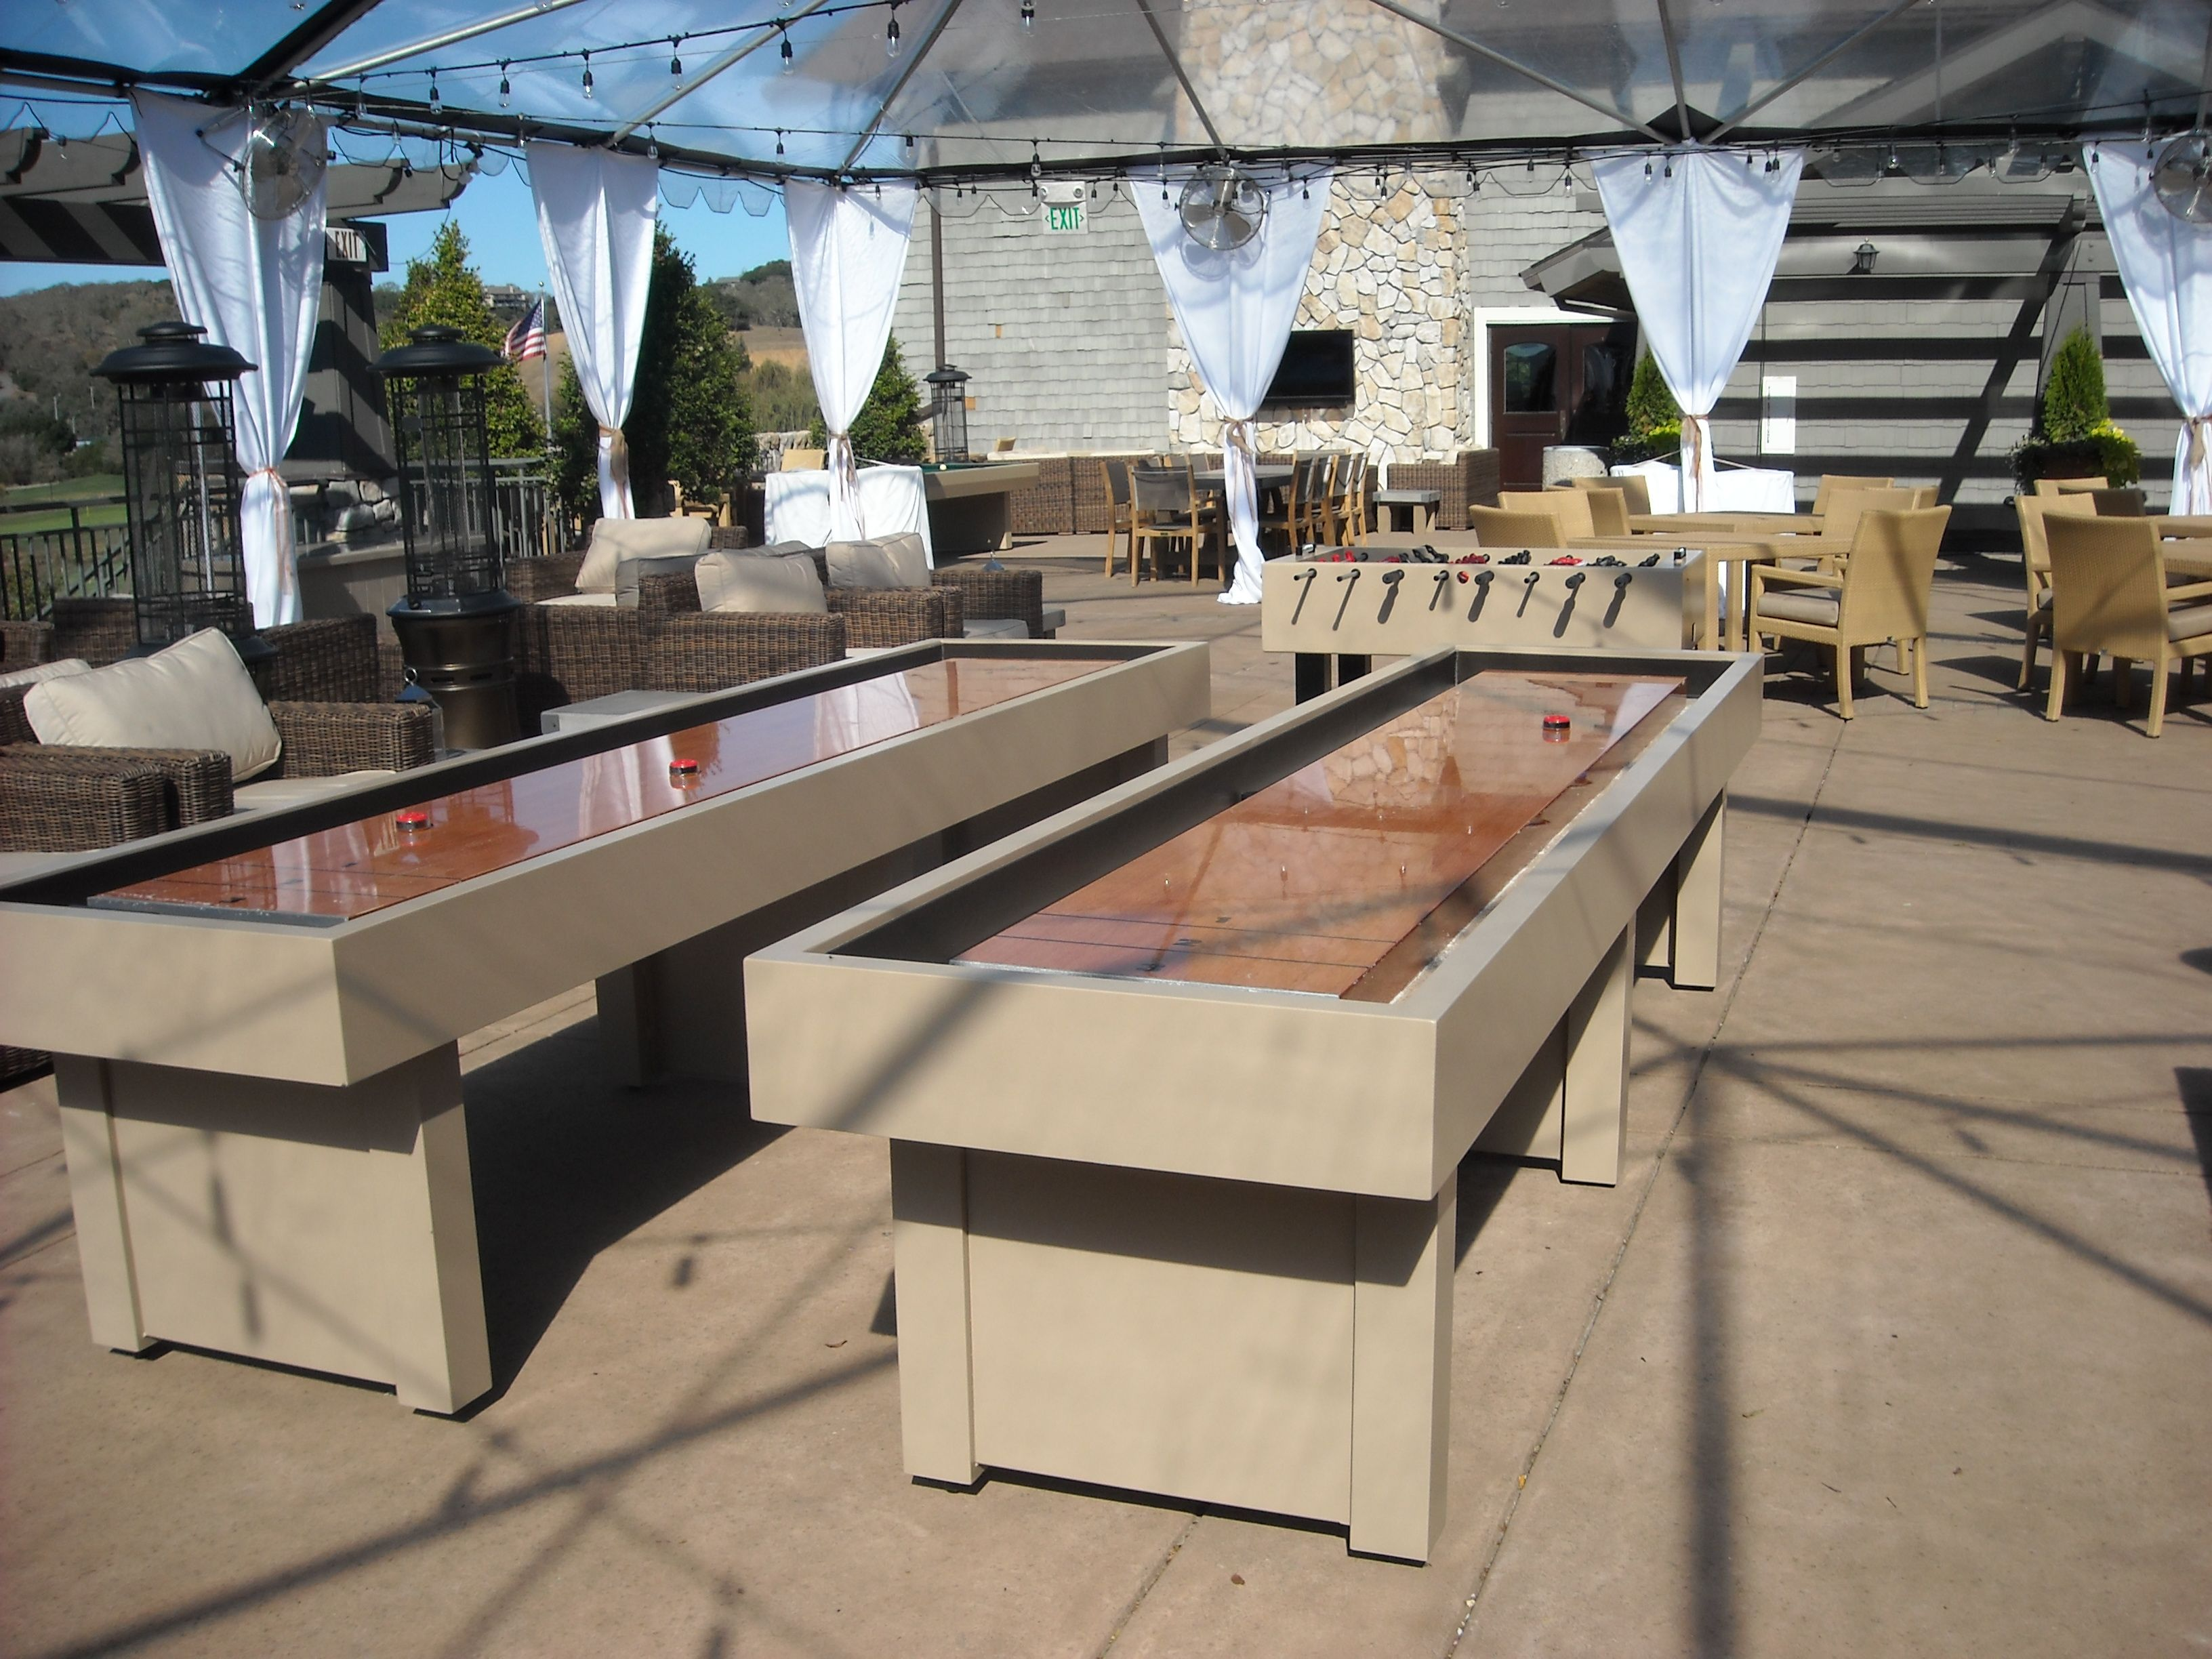 Outdoor Shuffleboard Table by Hudson may be available with glow